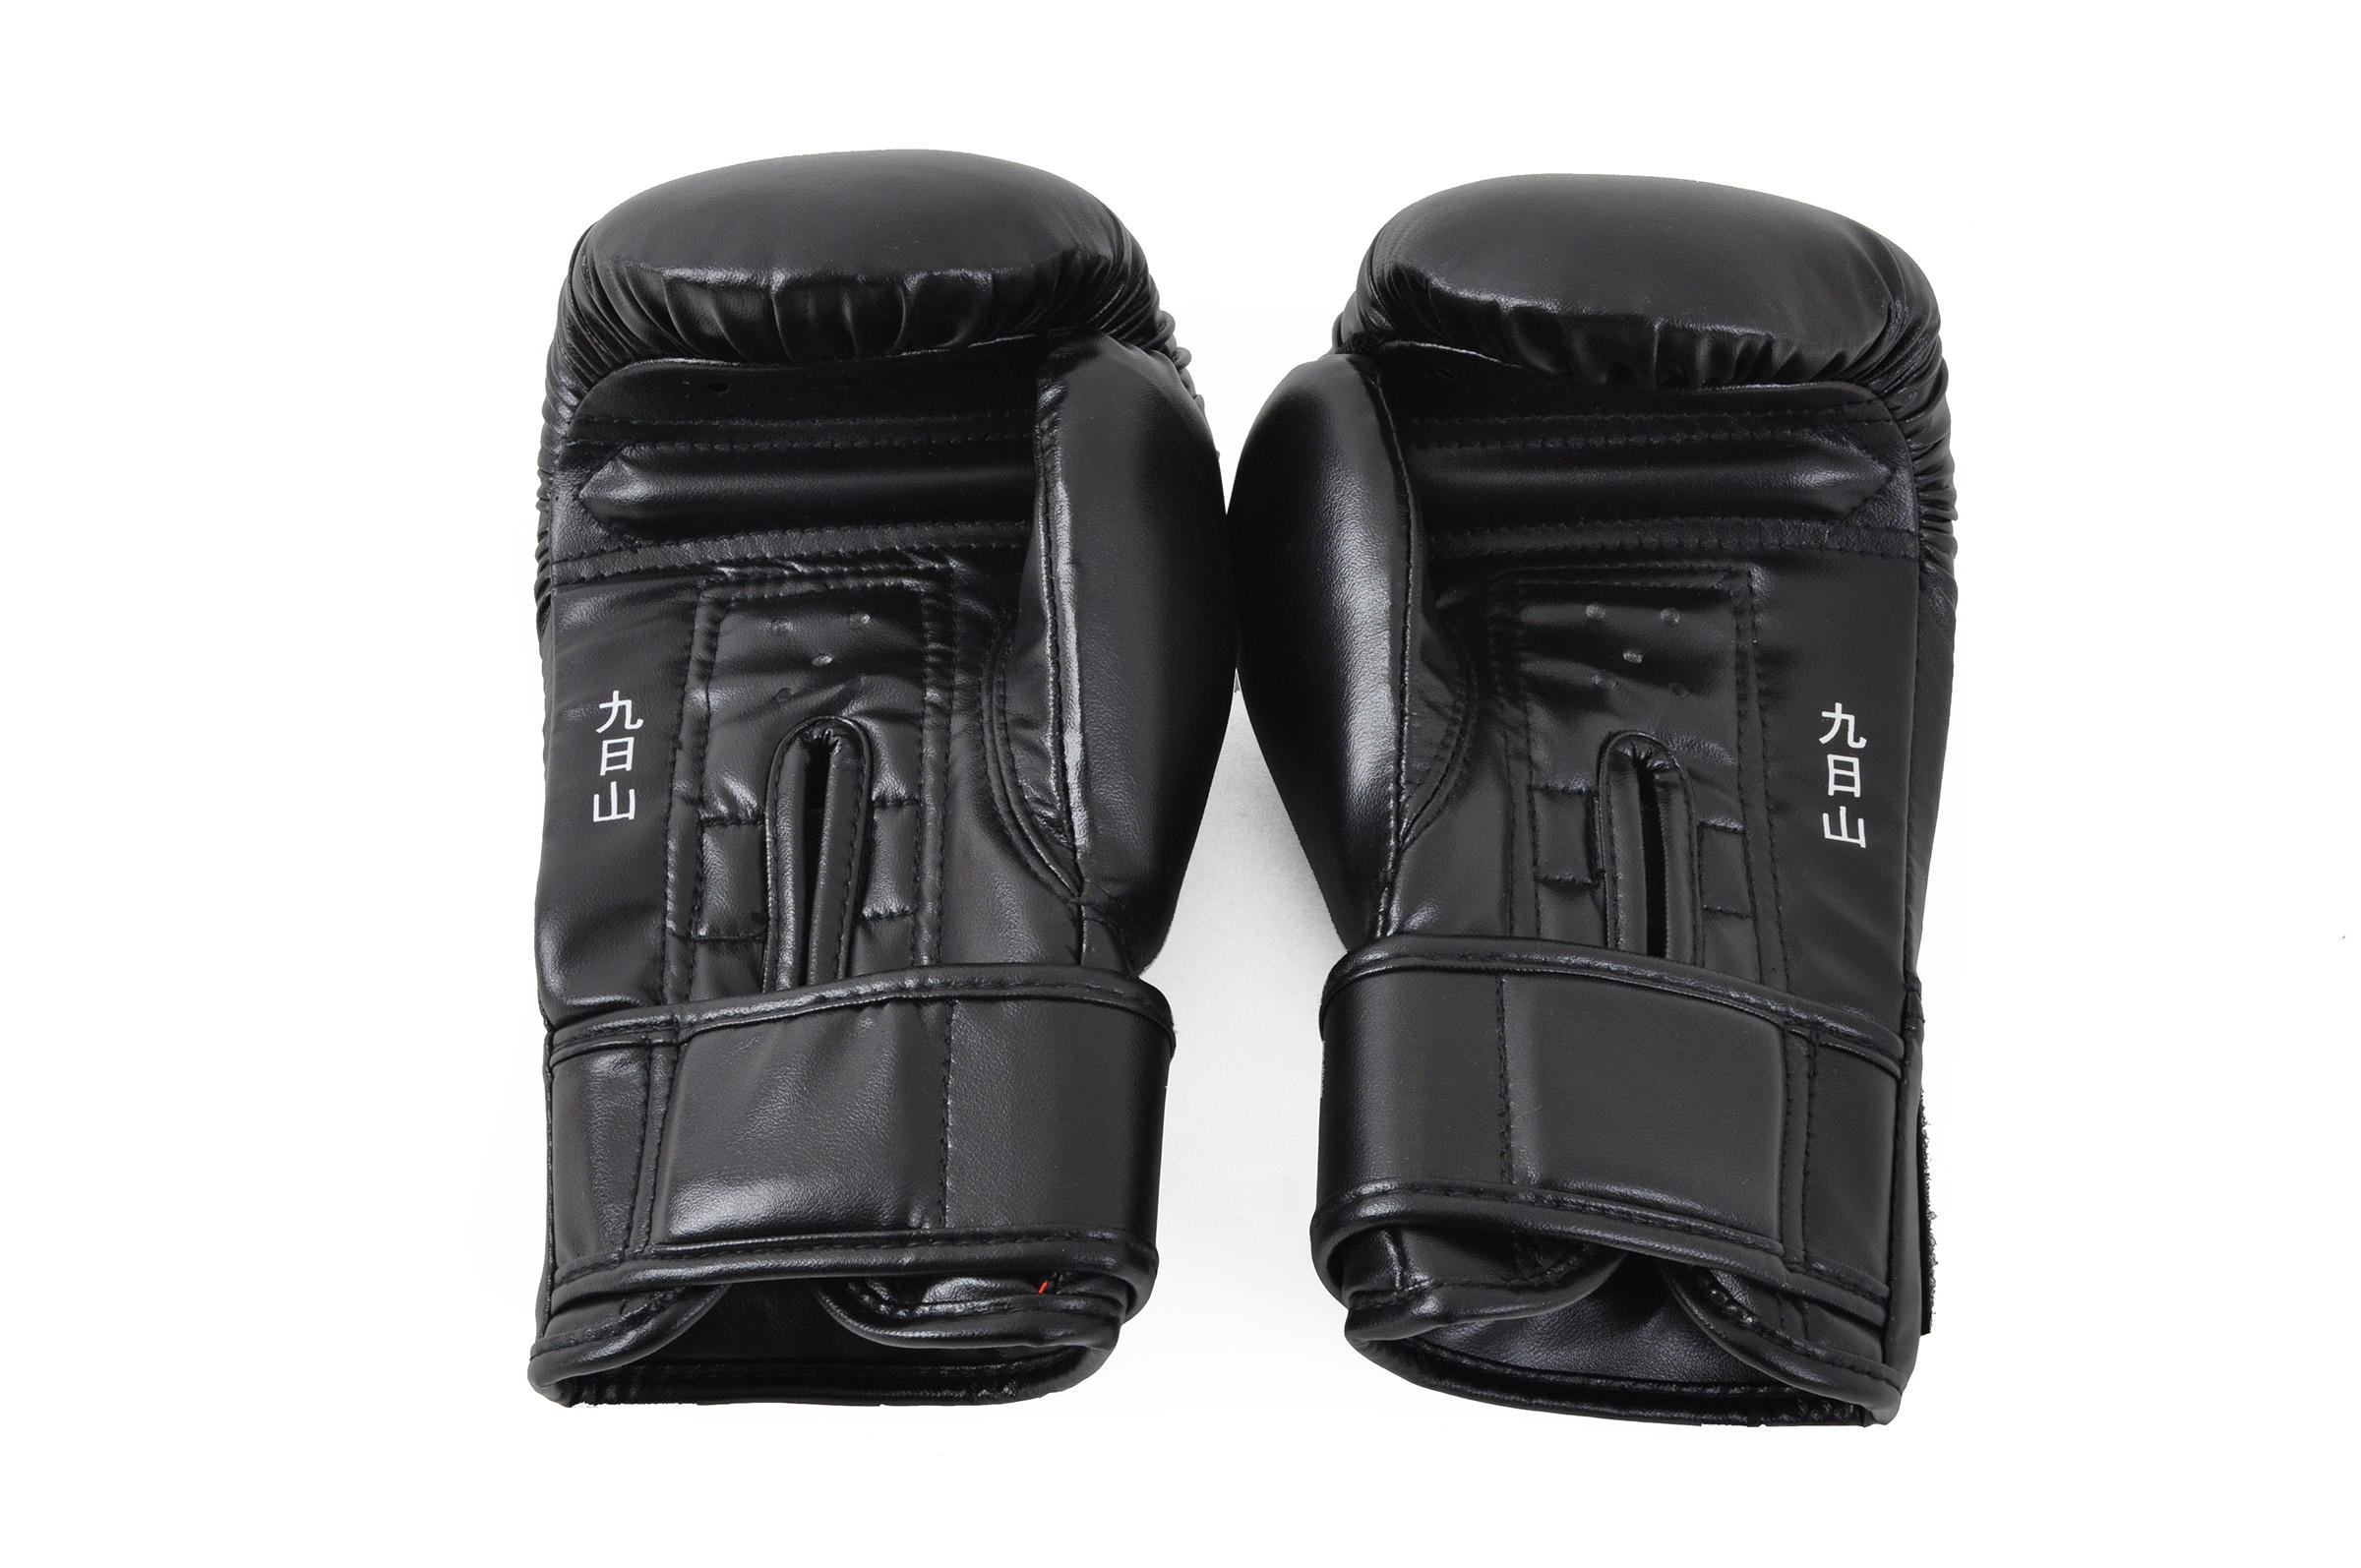 gants boxe chinoise enfants sanda wesing. Black Bedroom Furniture Sets. Home Design Ideas